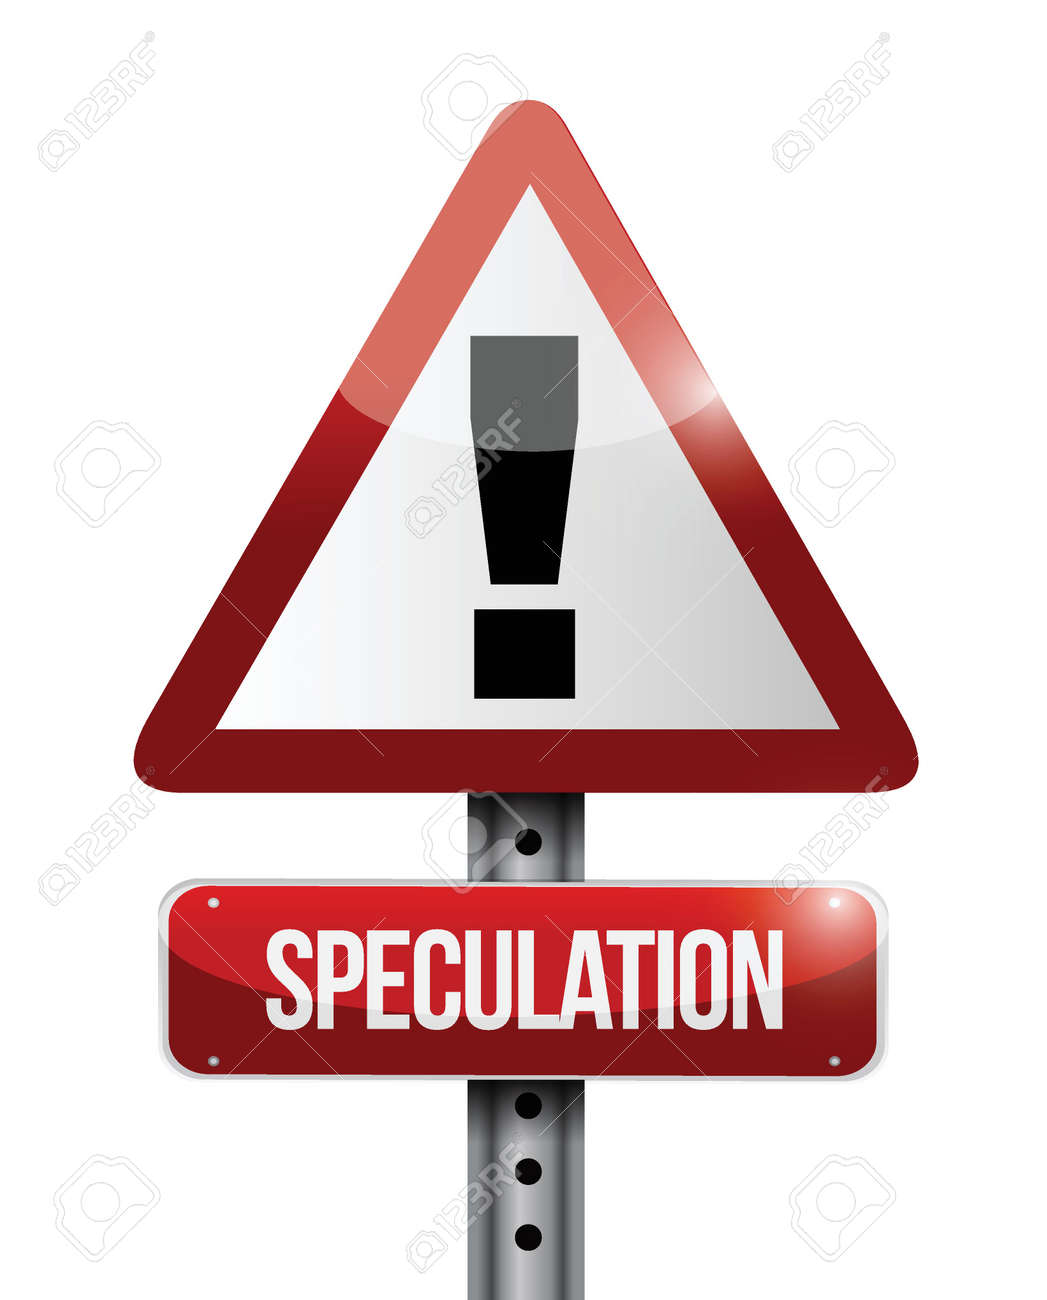 speculation warning road sign illustration design over a white background Stock Vector - 23964591